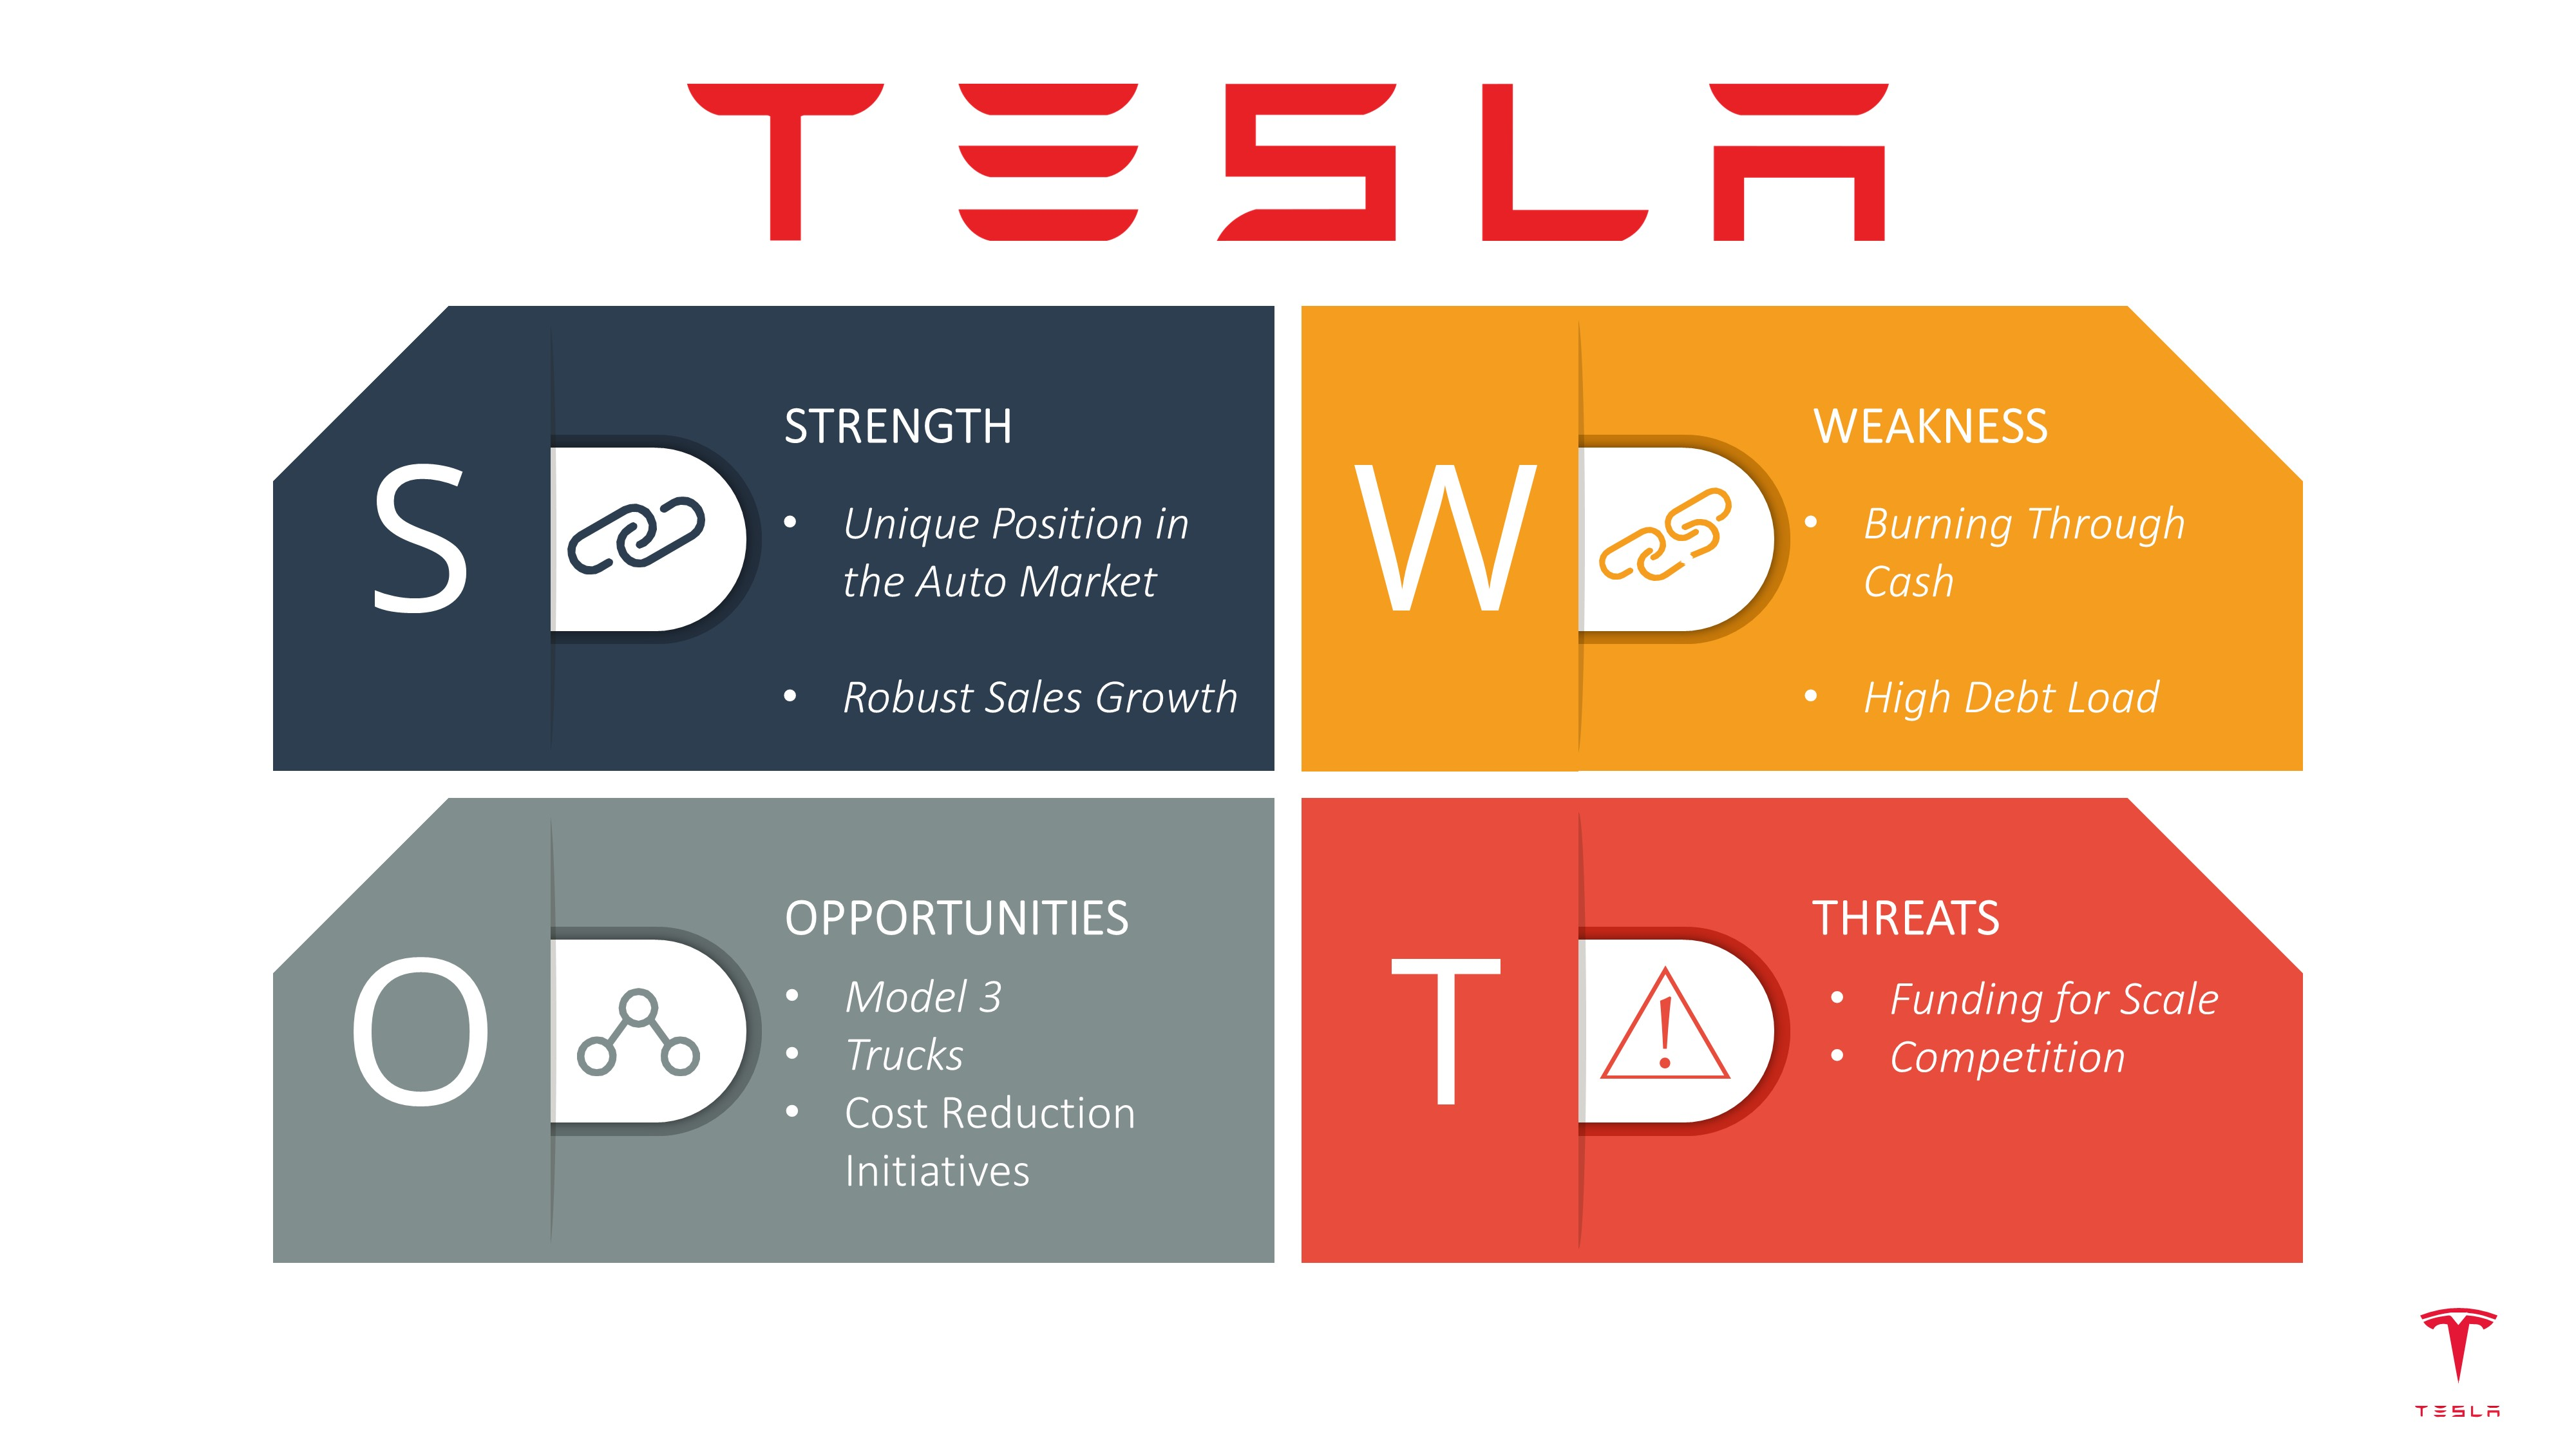 SWOT Analysis Presentation for Tesla Car Company